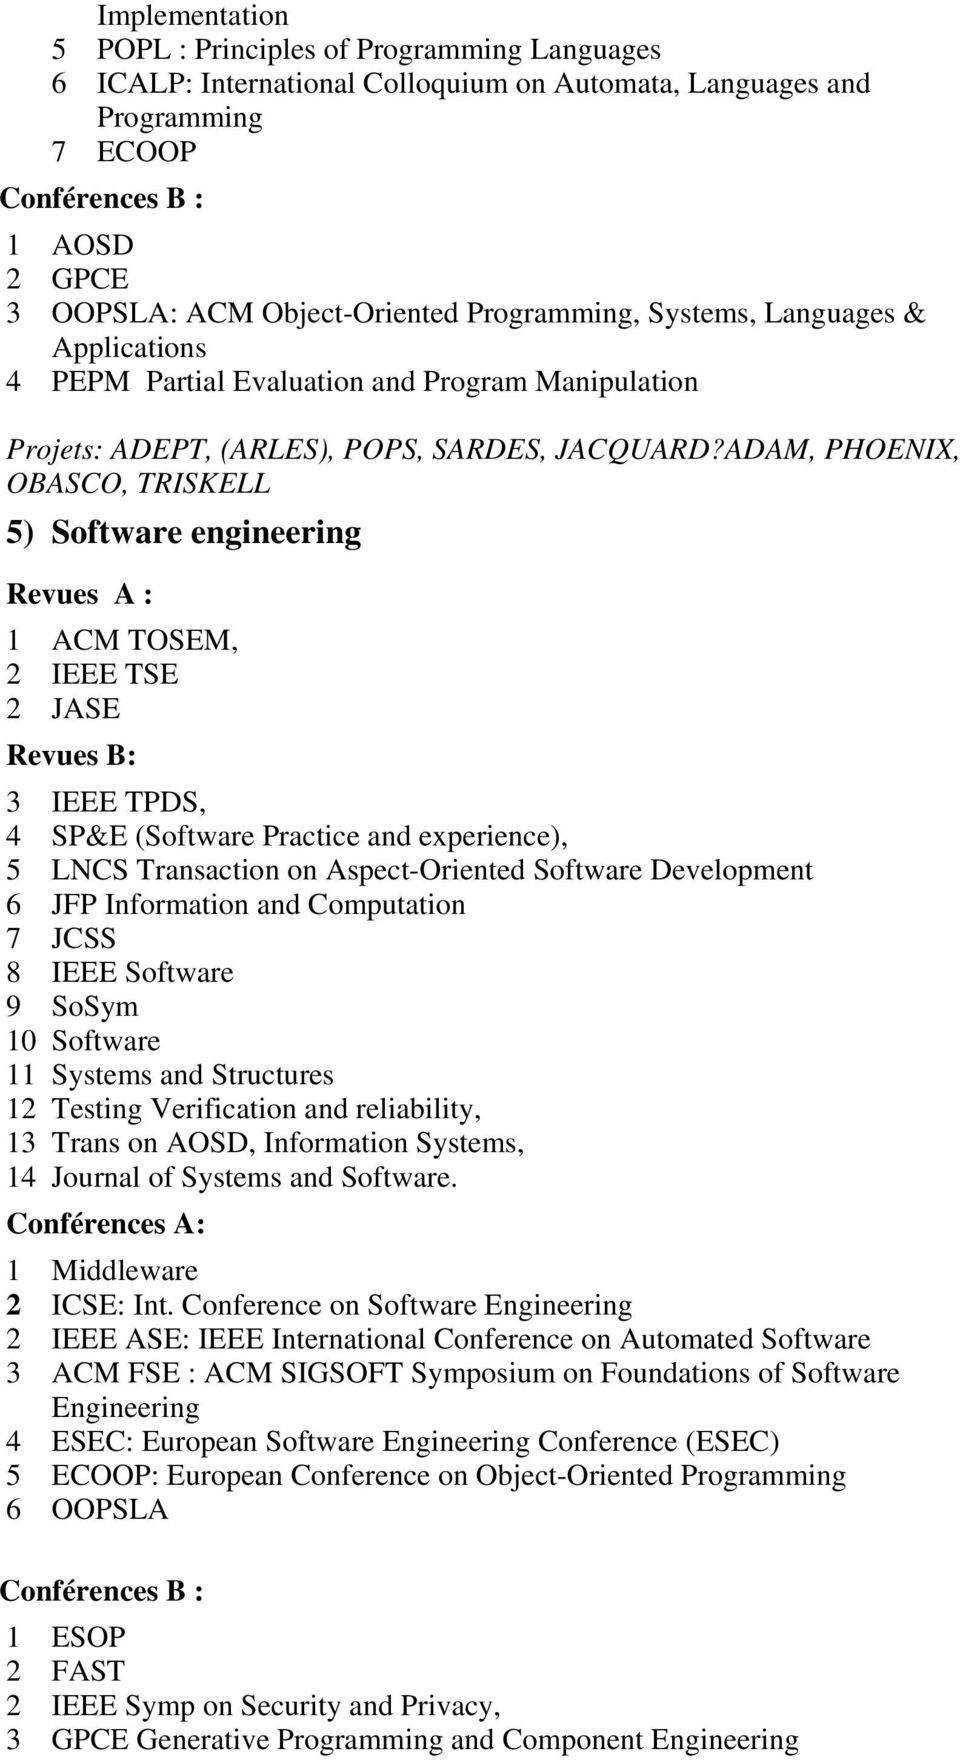 ADAM, PHOENIX, OBASCO, TRISKELL 5) Software engineering 1 ACM TOSEM, 2 IEEE TSE 2 JASE 3 IEEE TPDS, 4 SP&E (Software Practice and experience), 5 LNCS Transaction on Aspect-Oriented Software